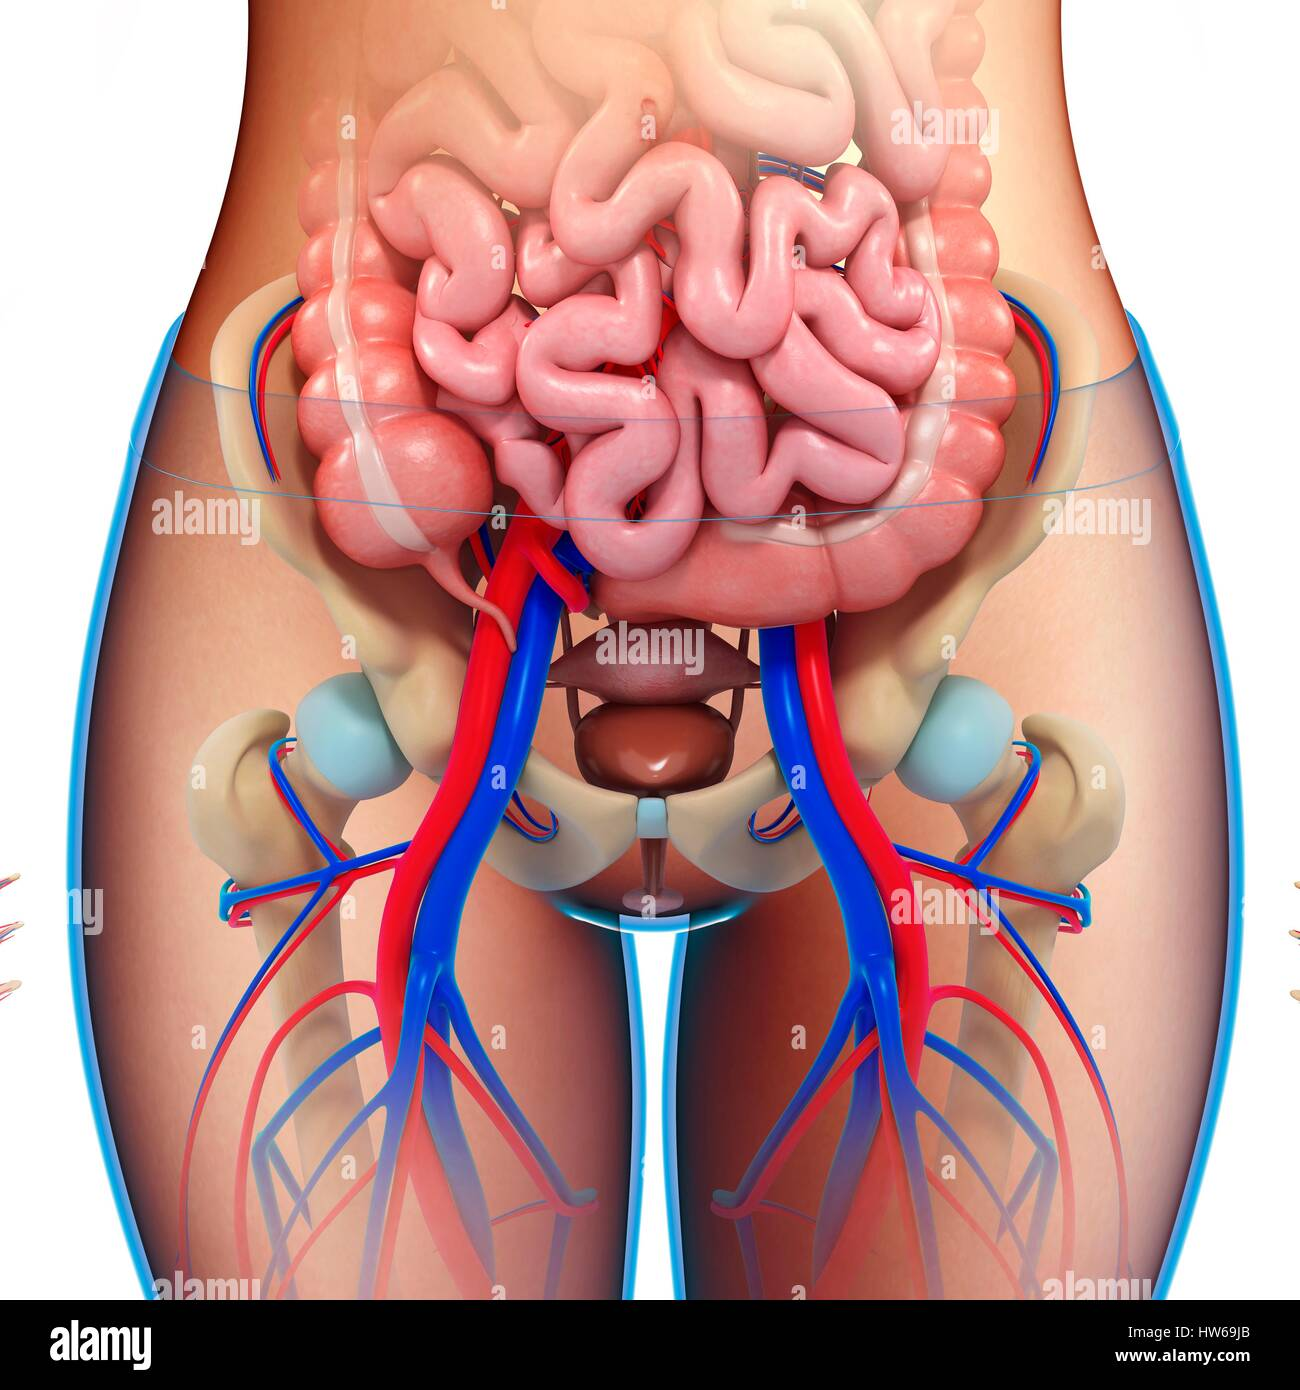 Illustration of female pelvic anatomy Stock Photo: 135978259 - Alamy